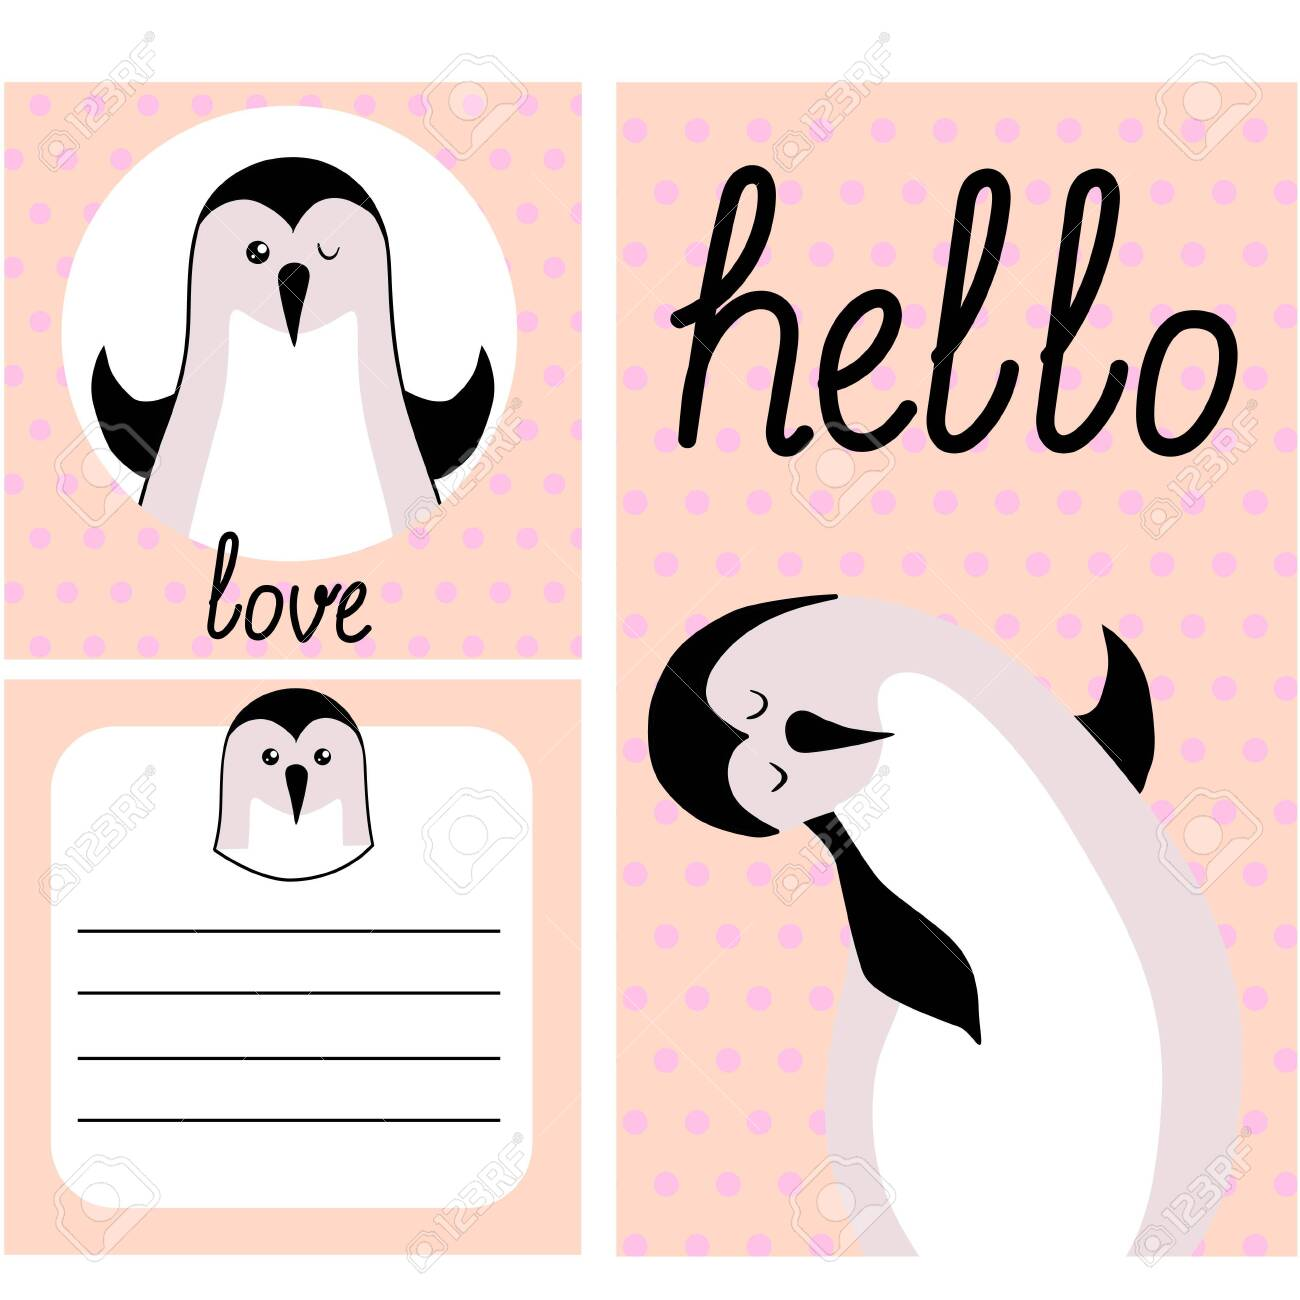 Cute Hand Drawn Doodle Baby Shower Cards Brochures Invitations